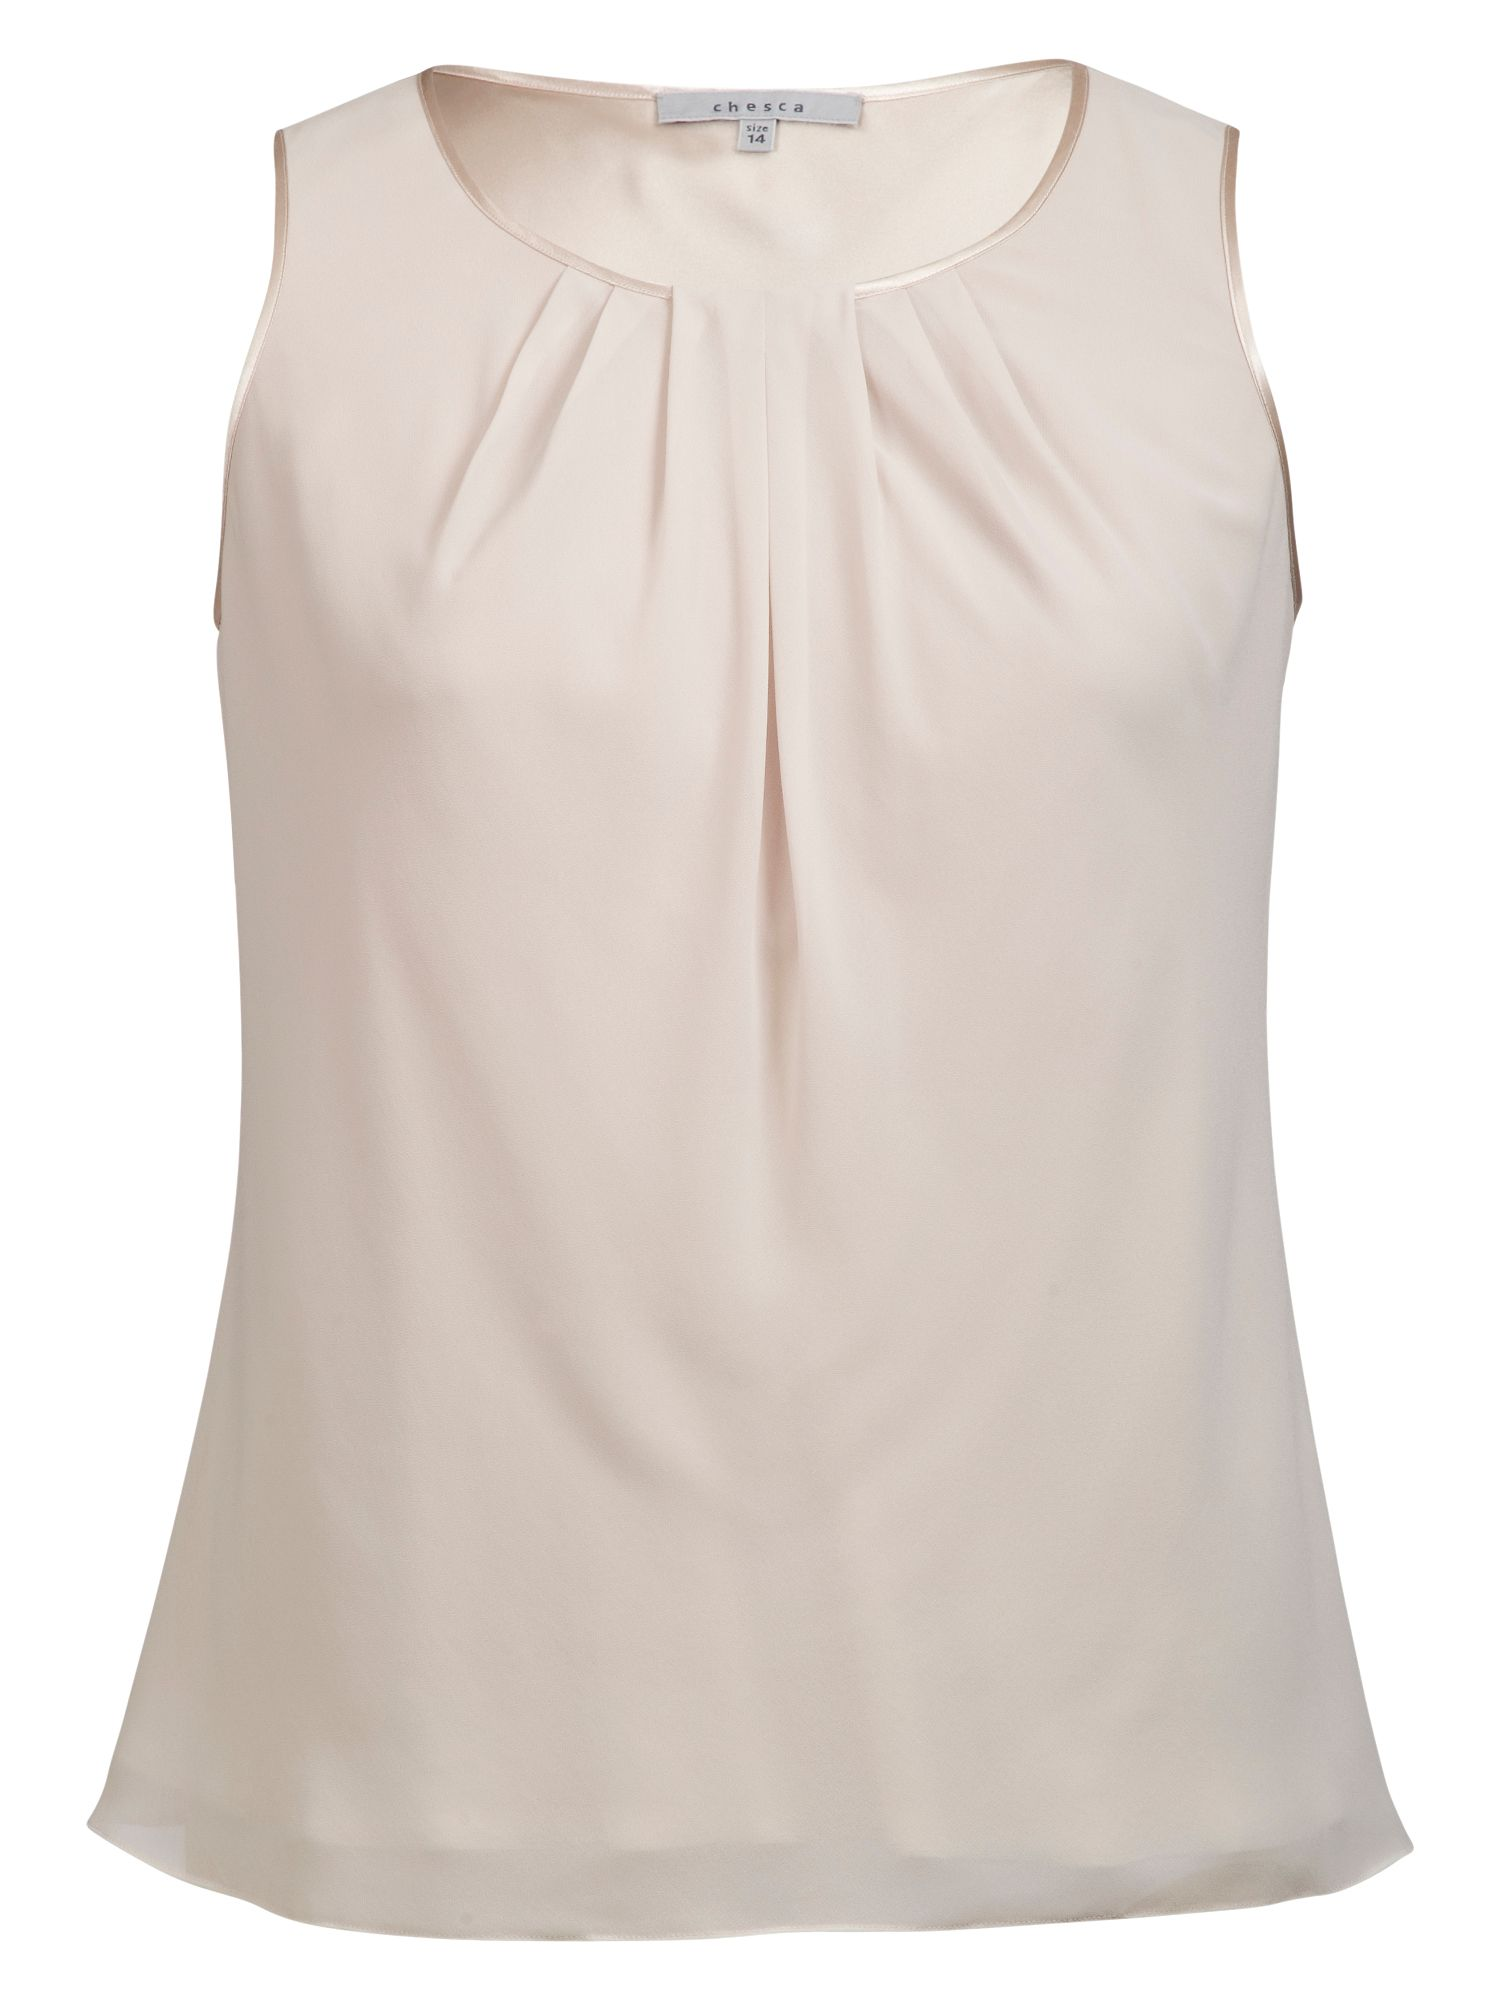 Satin trimmed tuck detail camisole